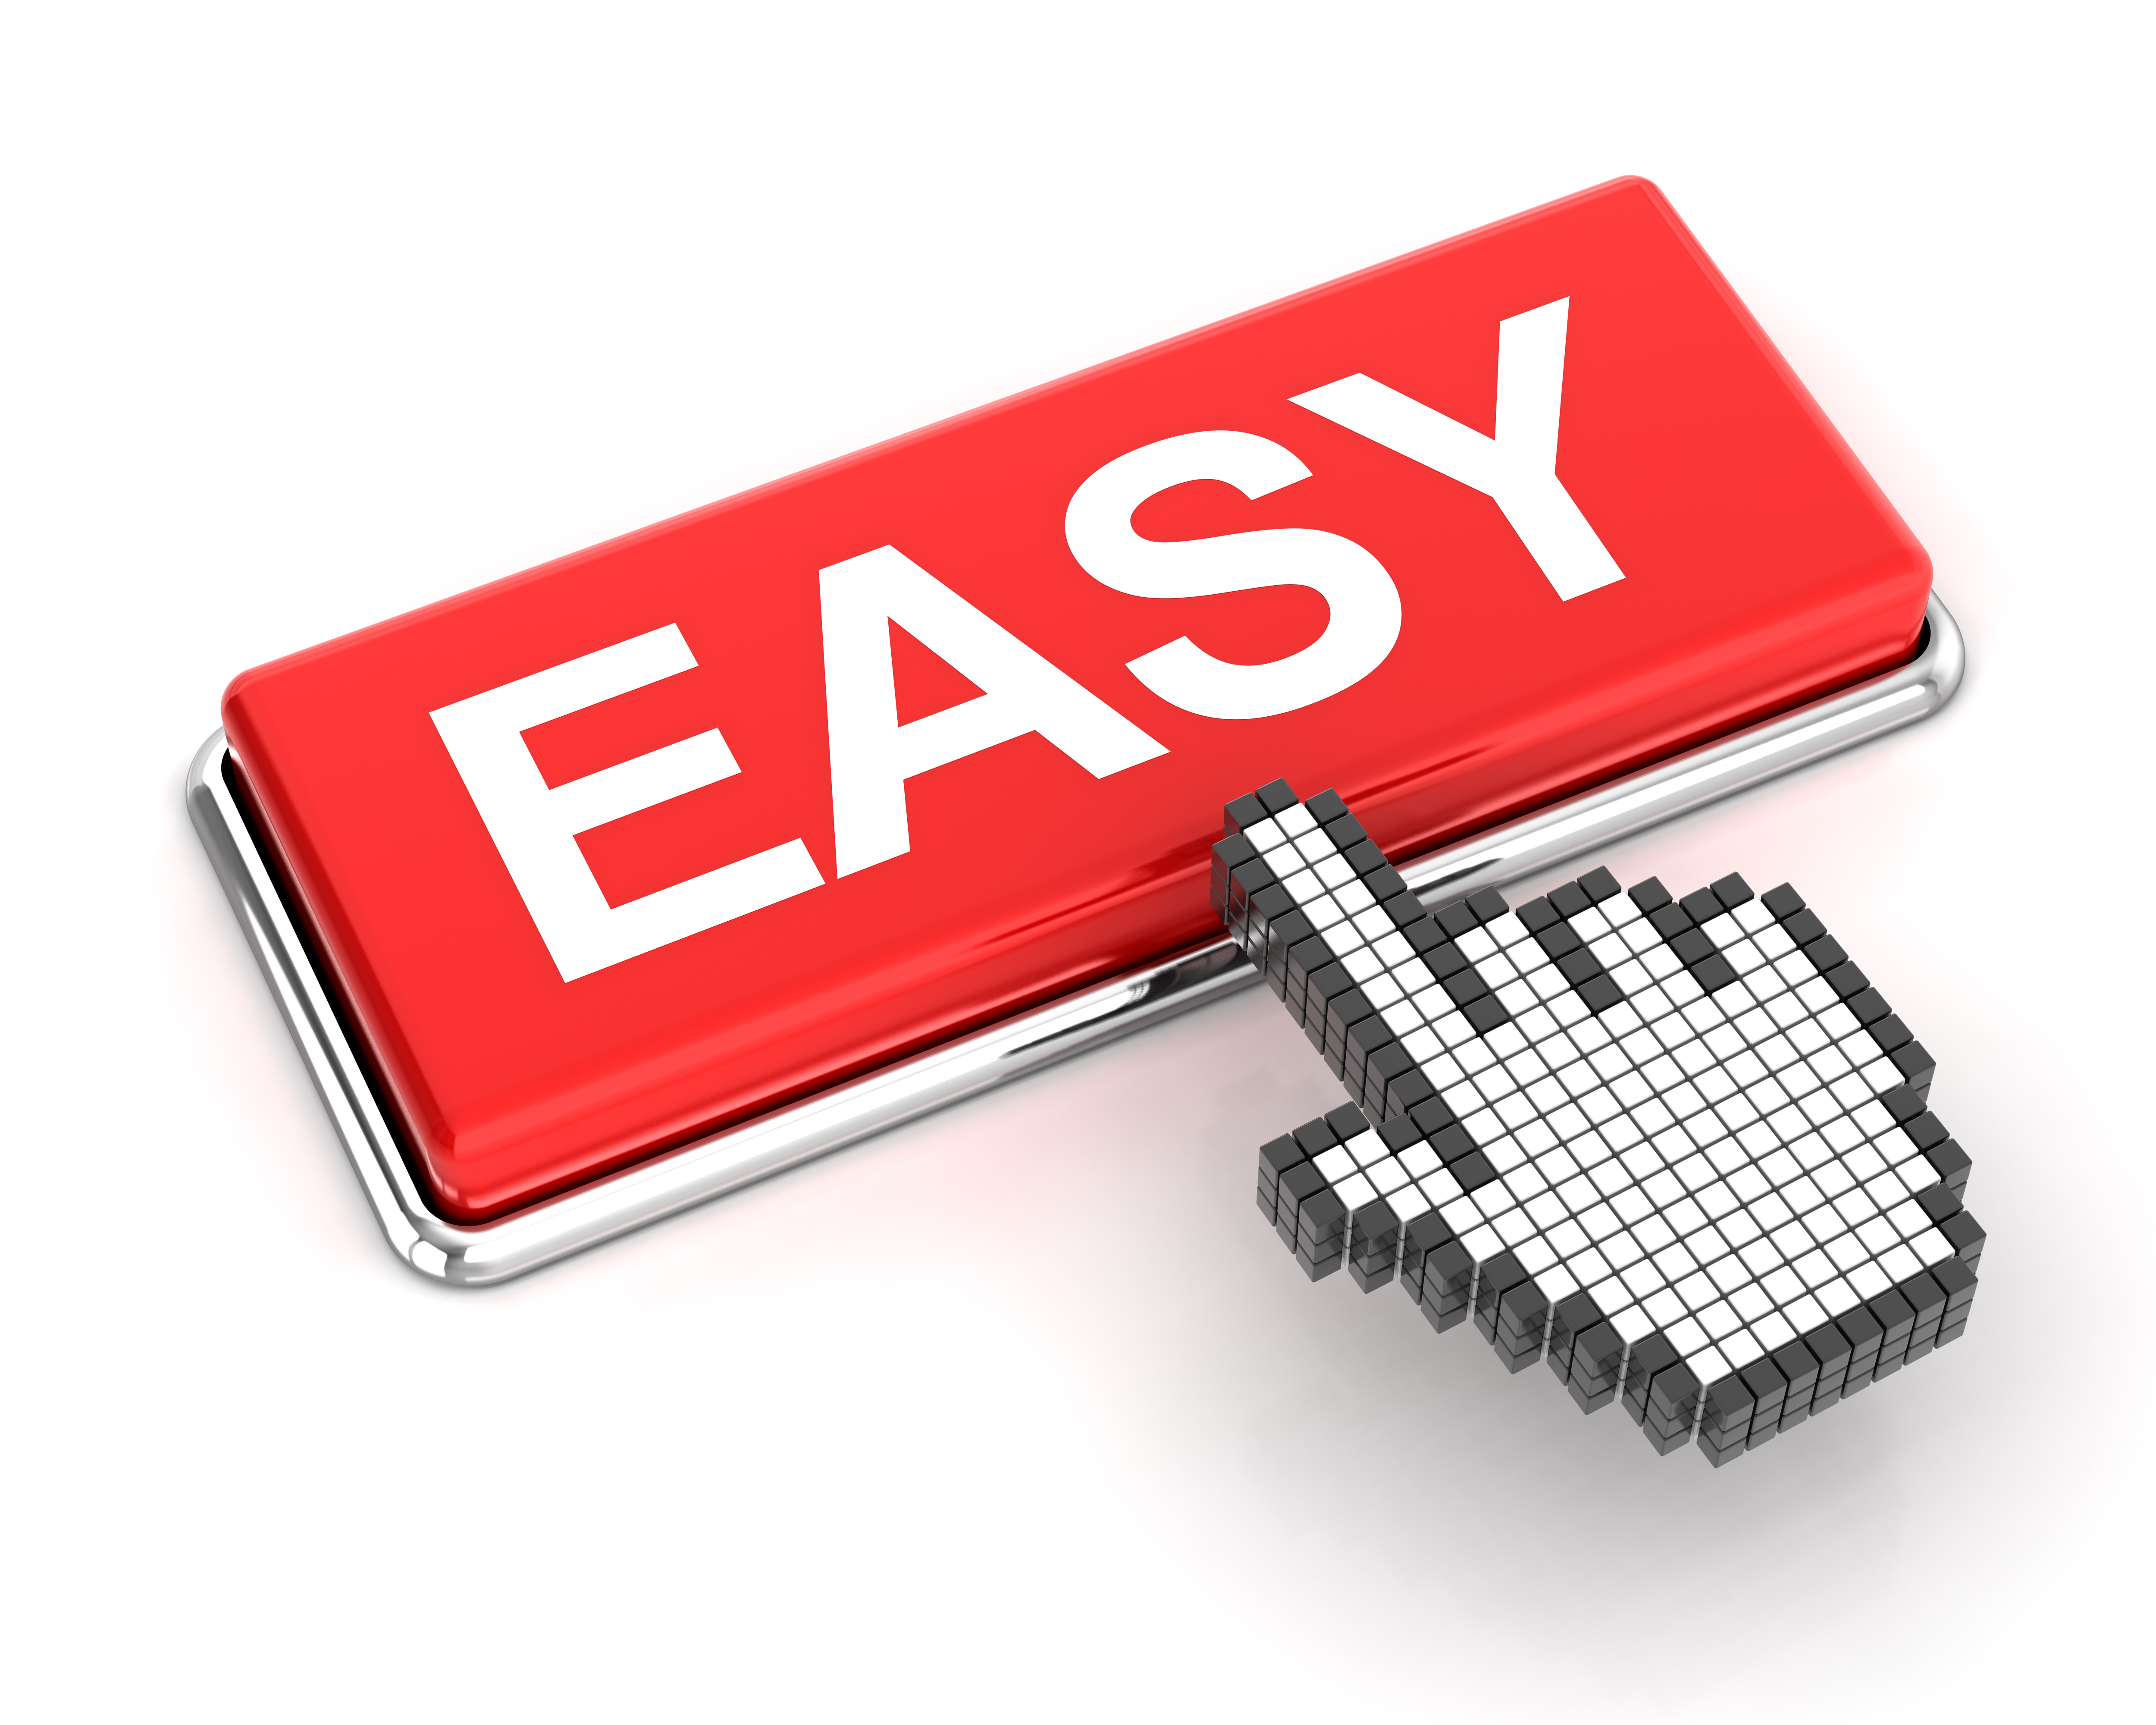 Could You Use An Easy Button To Plan Your Travel?